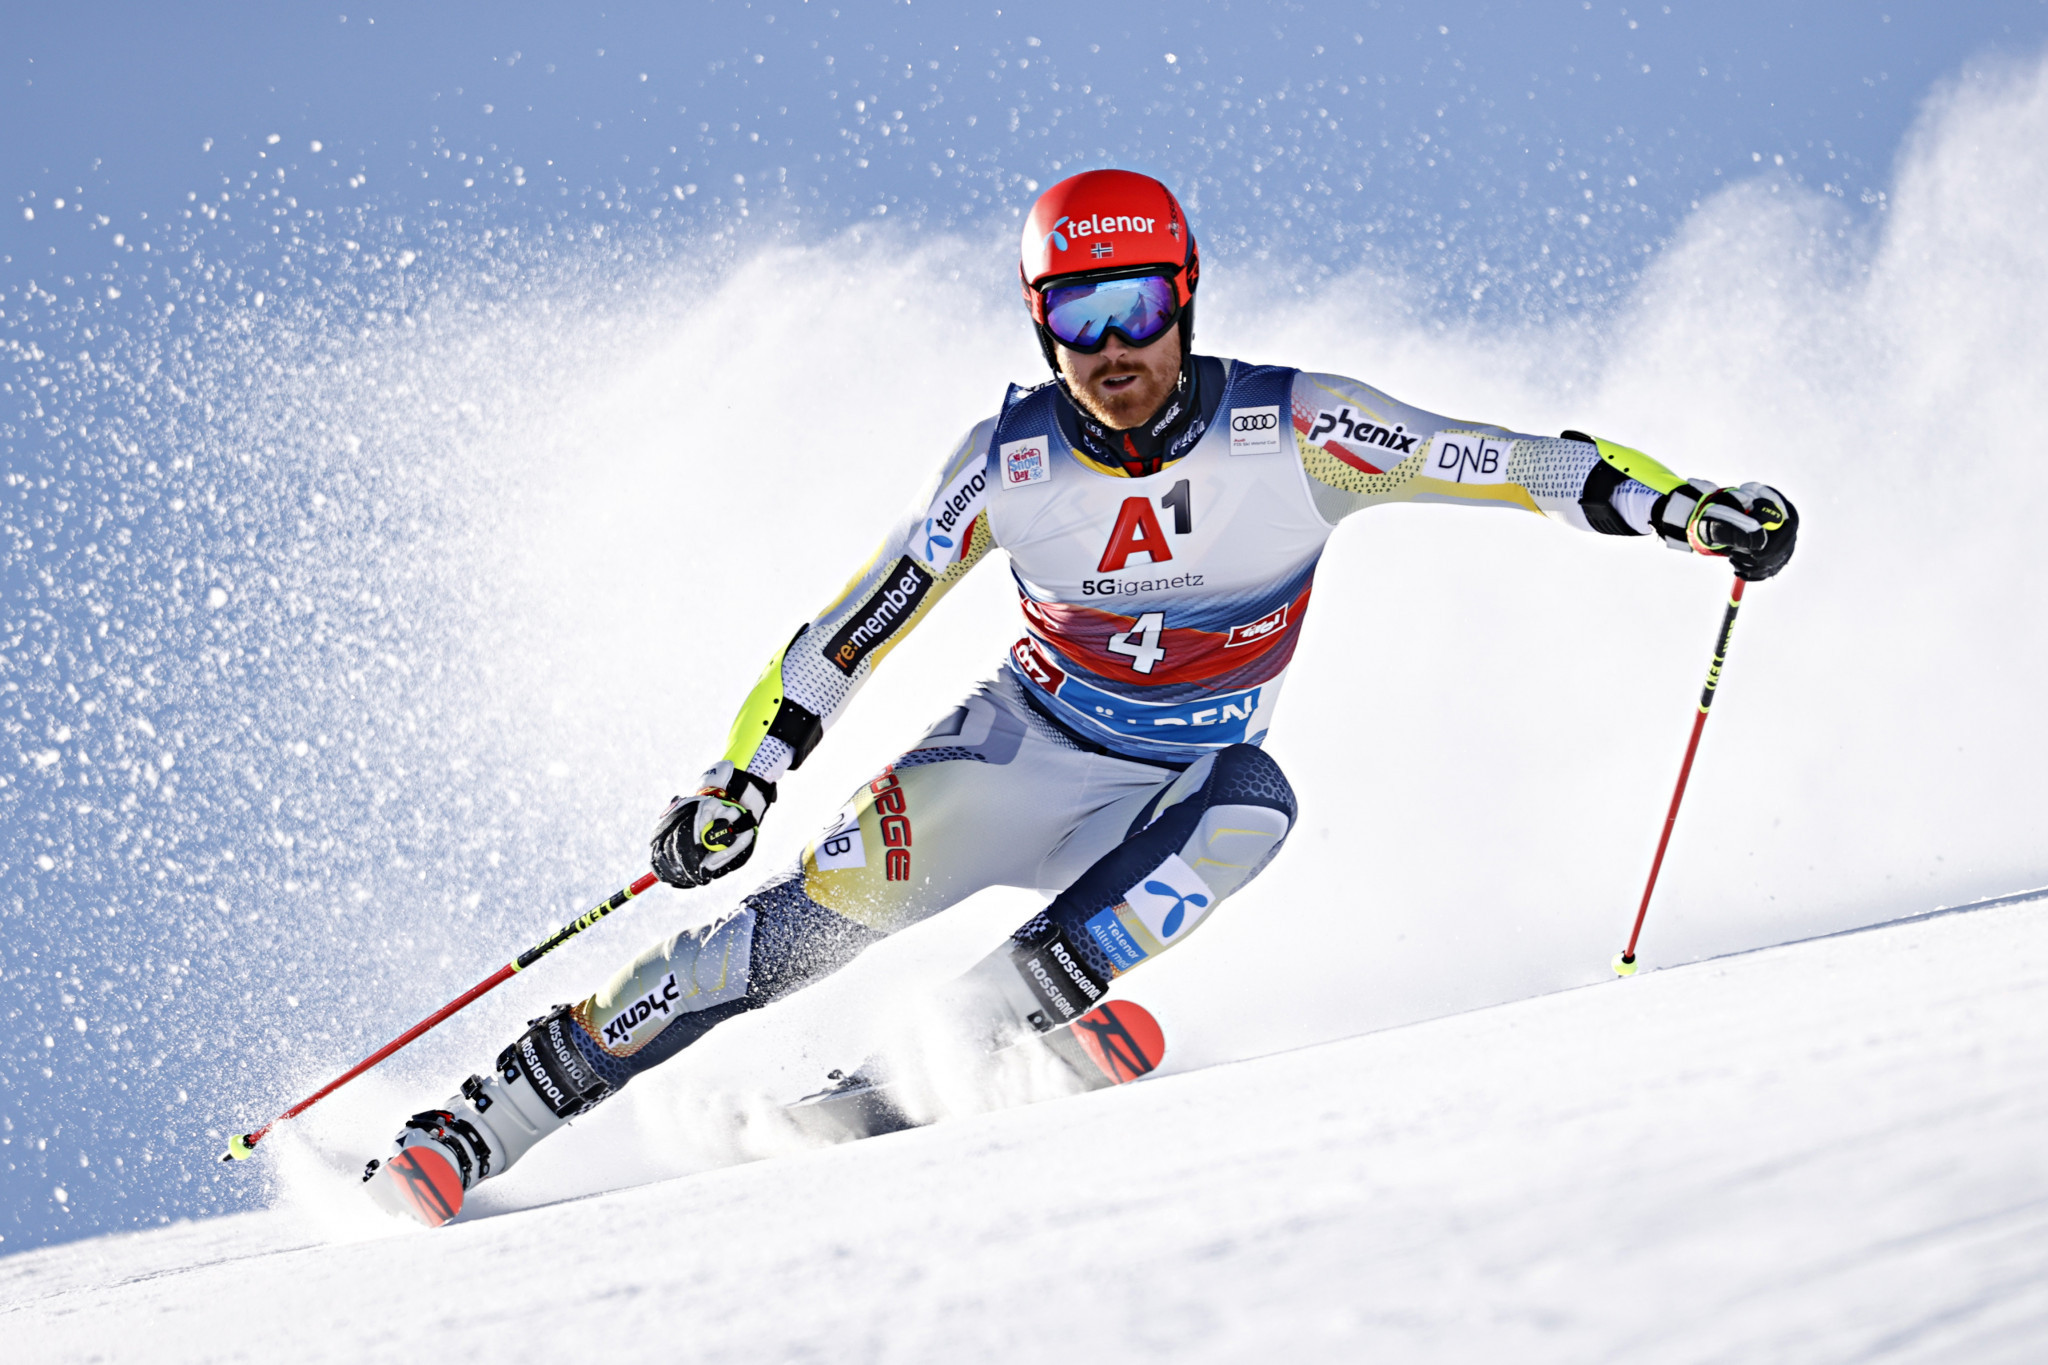 Reigning FIS Alpine Ski World Cup champion Kilde tests positive for coronavirus